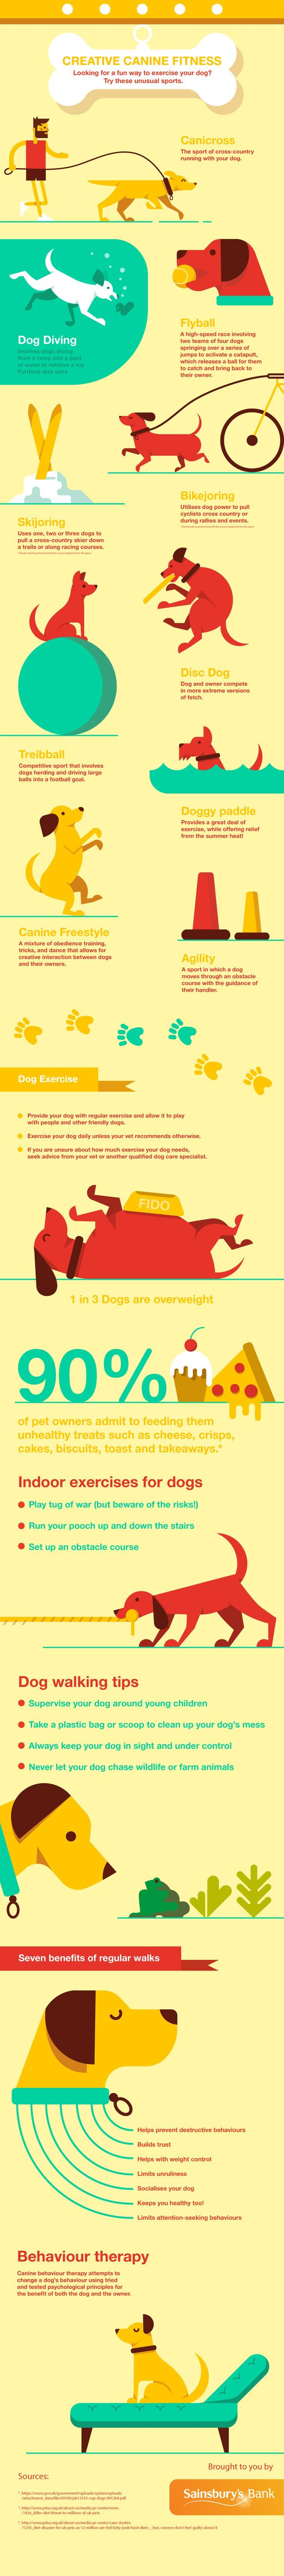 429 best dogs images on pinterest doggies dog cat and dog fitness infographics slimdoggy nvjuhfo Choice Image